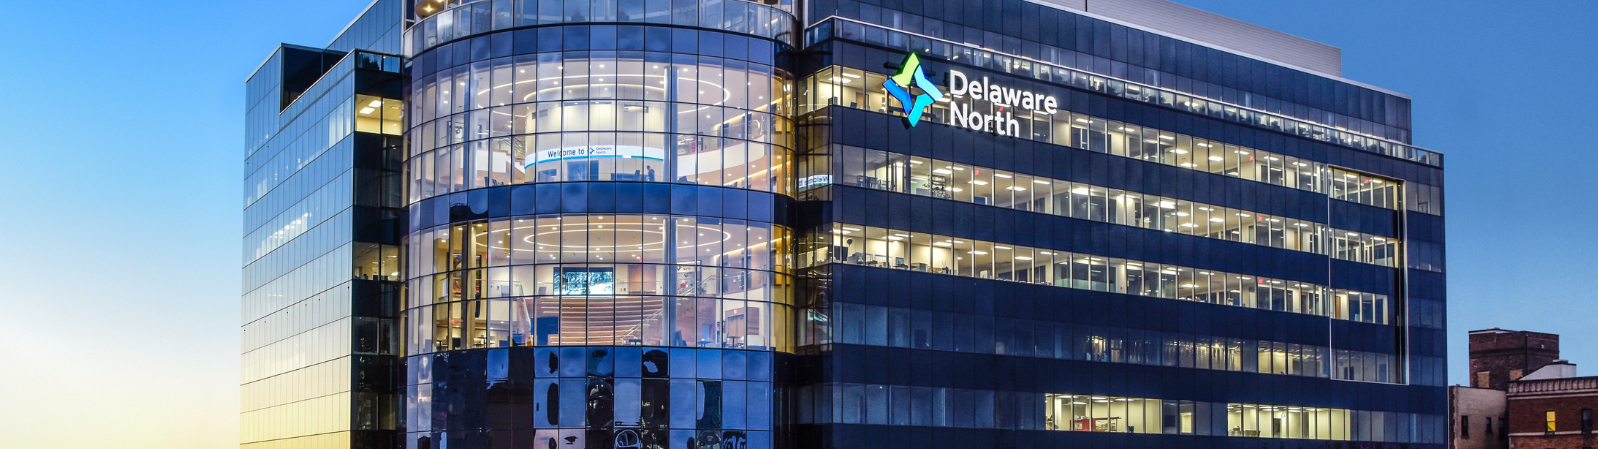 Delaware North corporate office